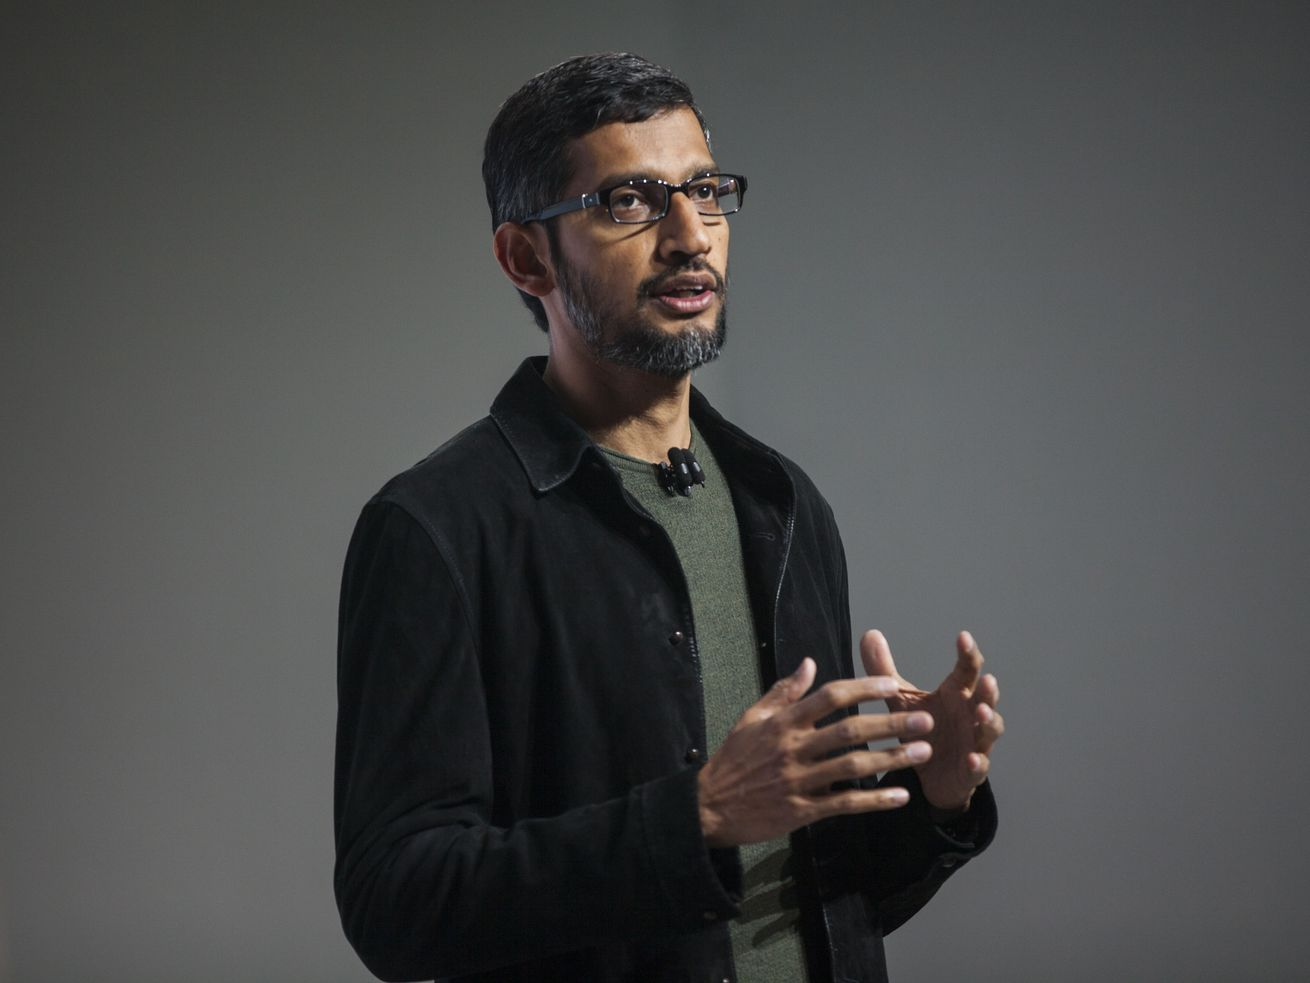 Google CEO Sundar Pichai has a beard, but facial hair restrictions at work affect many men of color.